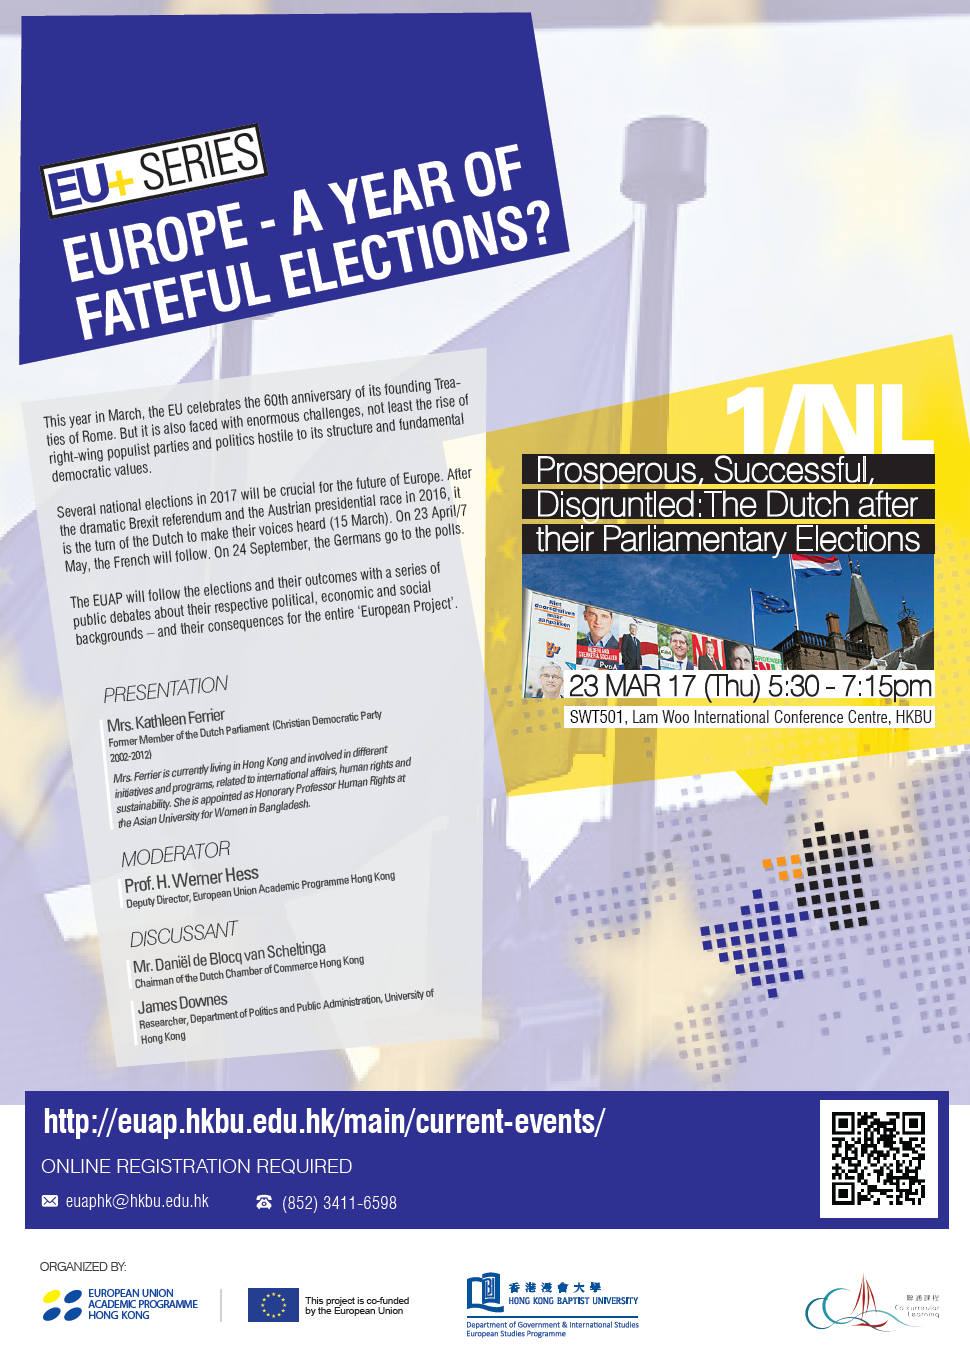 "[EU+ Series: Europe - A Year of Fateful Elections?] Seminar #1 ""Prosperous, Successful, Disgruntled: The Dutch after their Parliamentary Elections"""